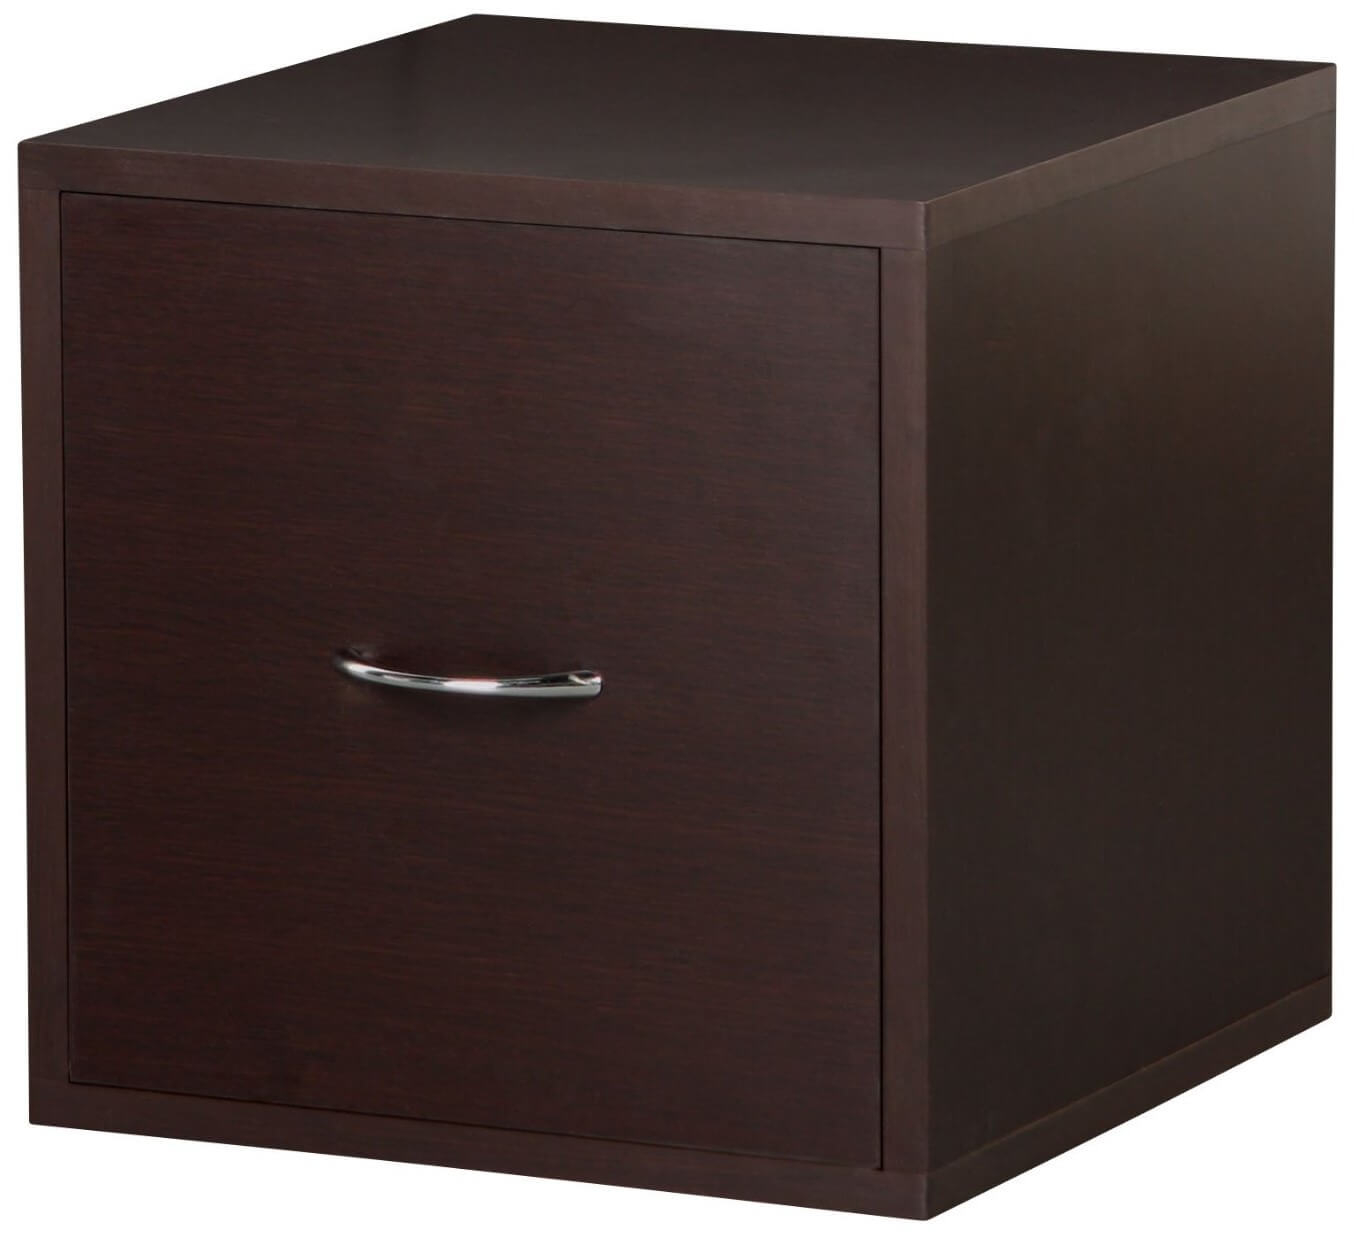 Top 10 types of home office filing cabinets for 1 door cabinet